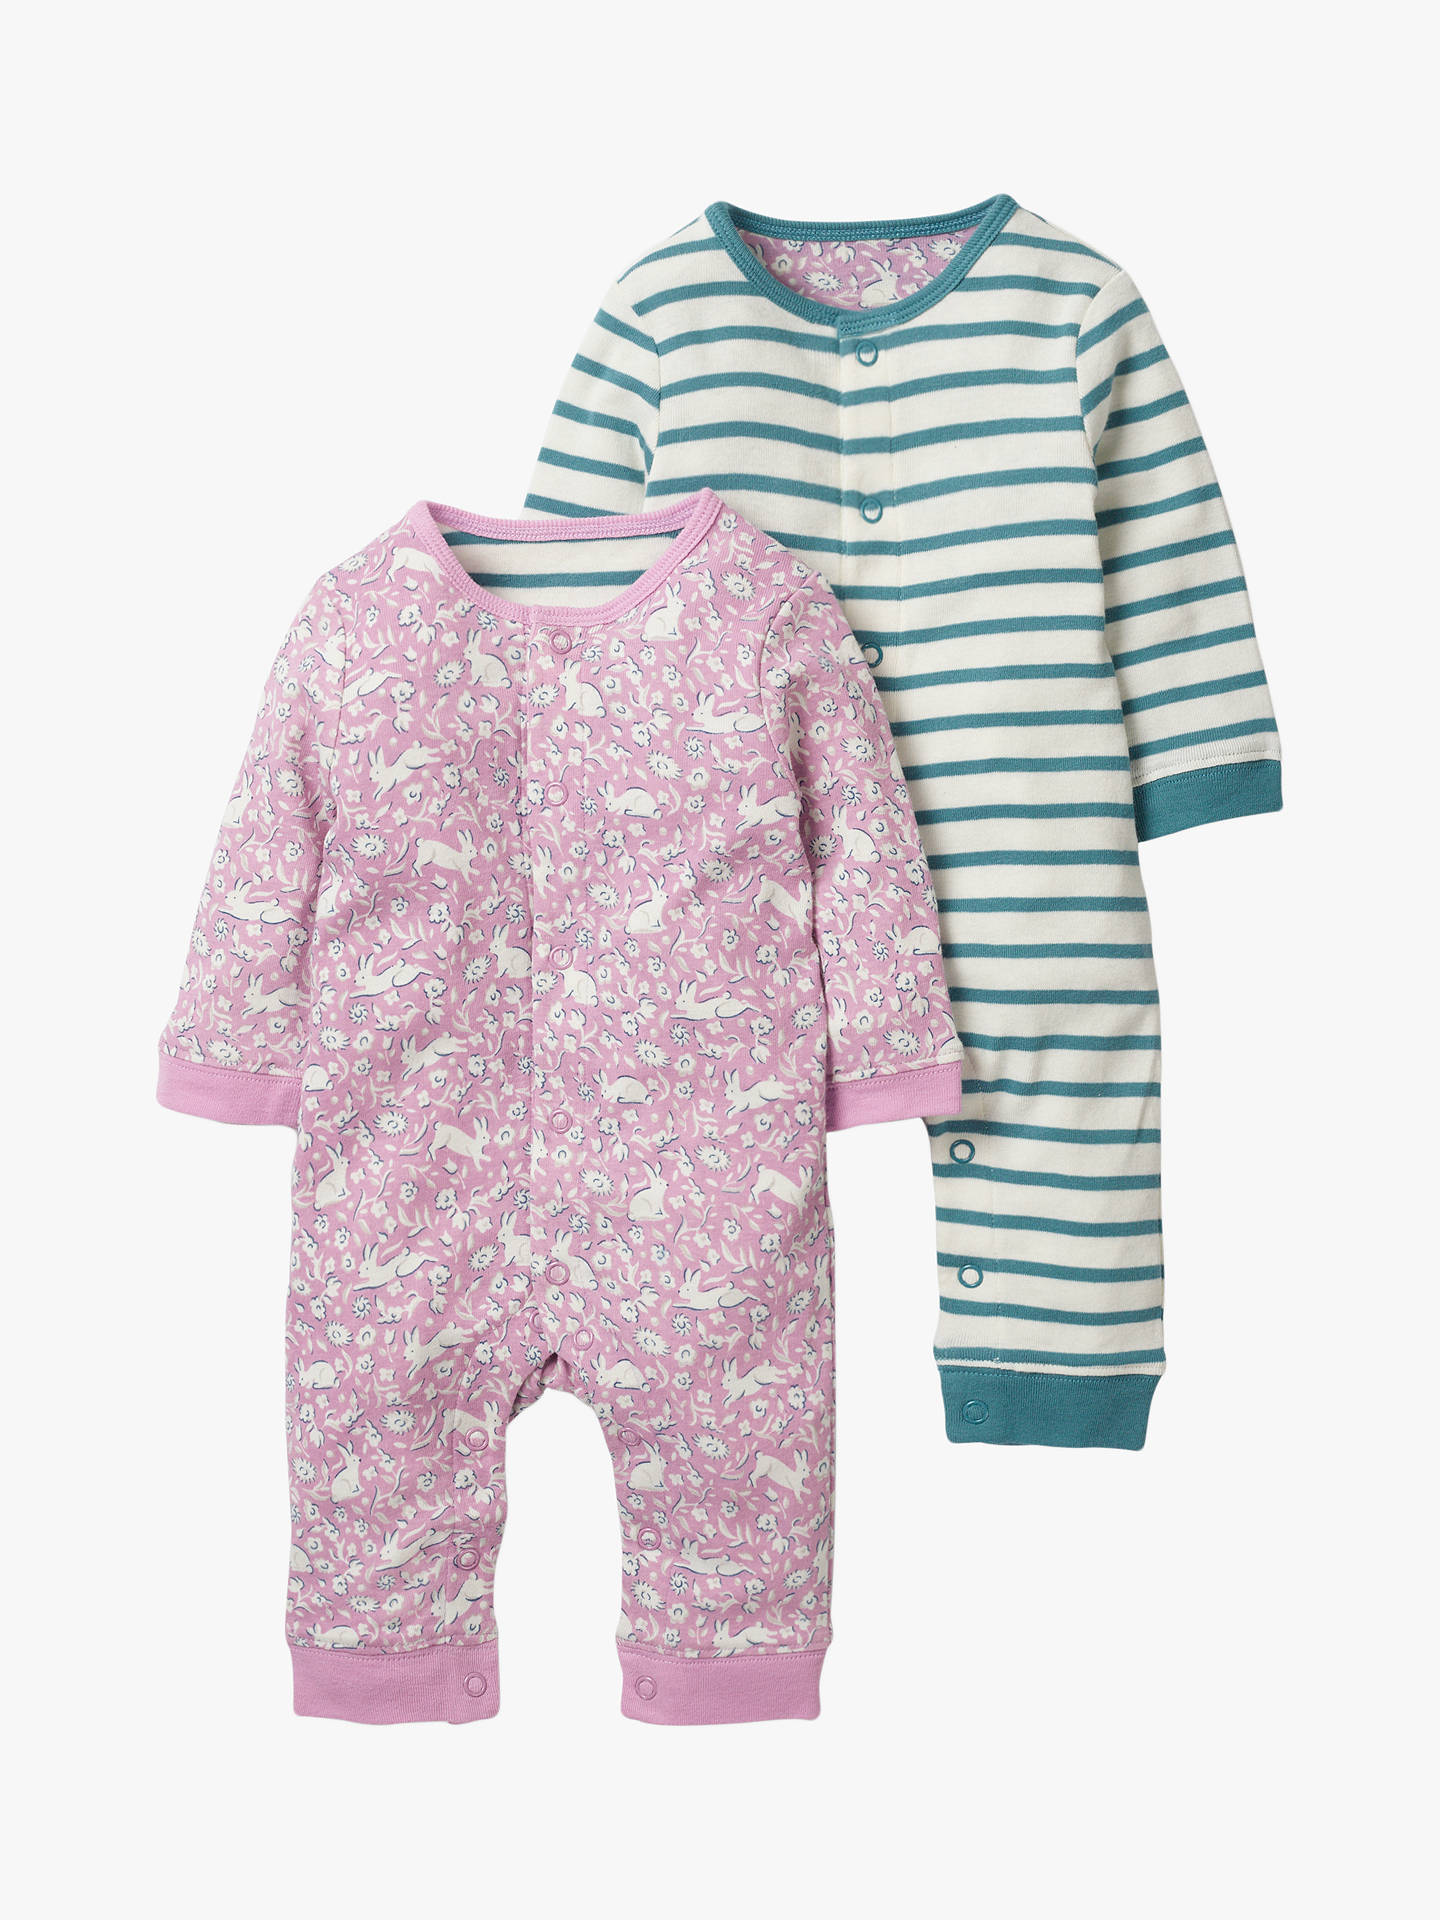 bec5dd93acbc2 Buy Mini Boden Baby Twin Bunny Stripe Romper